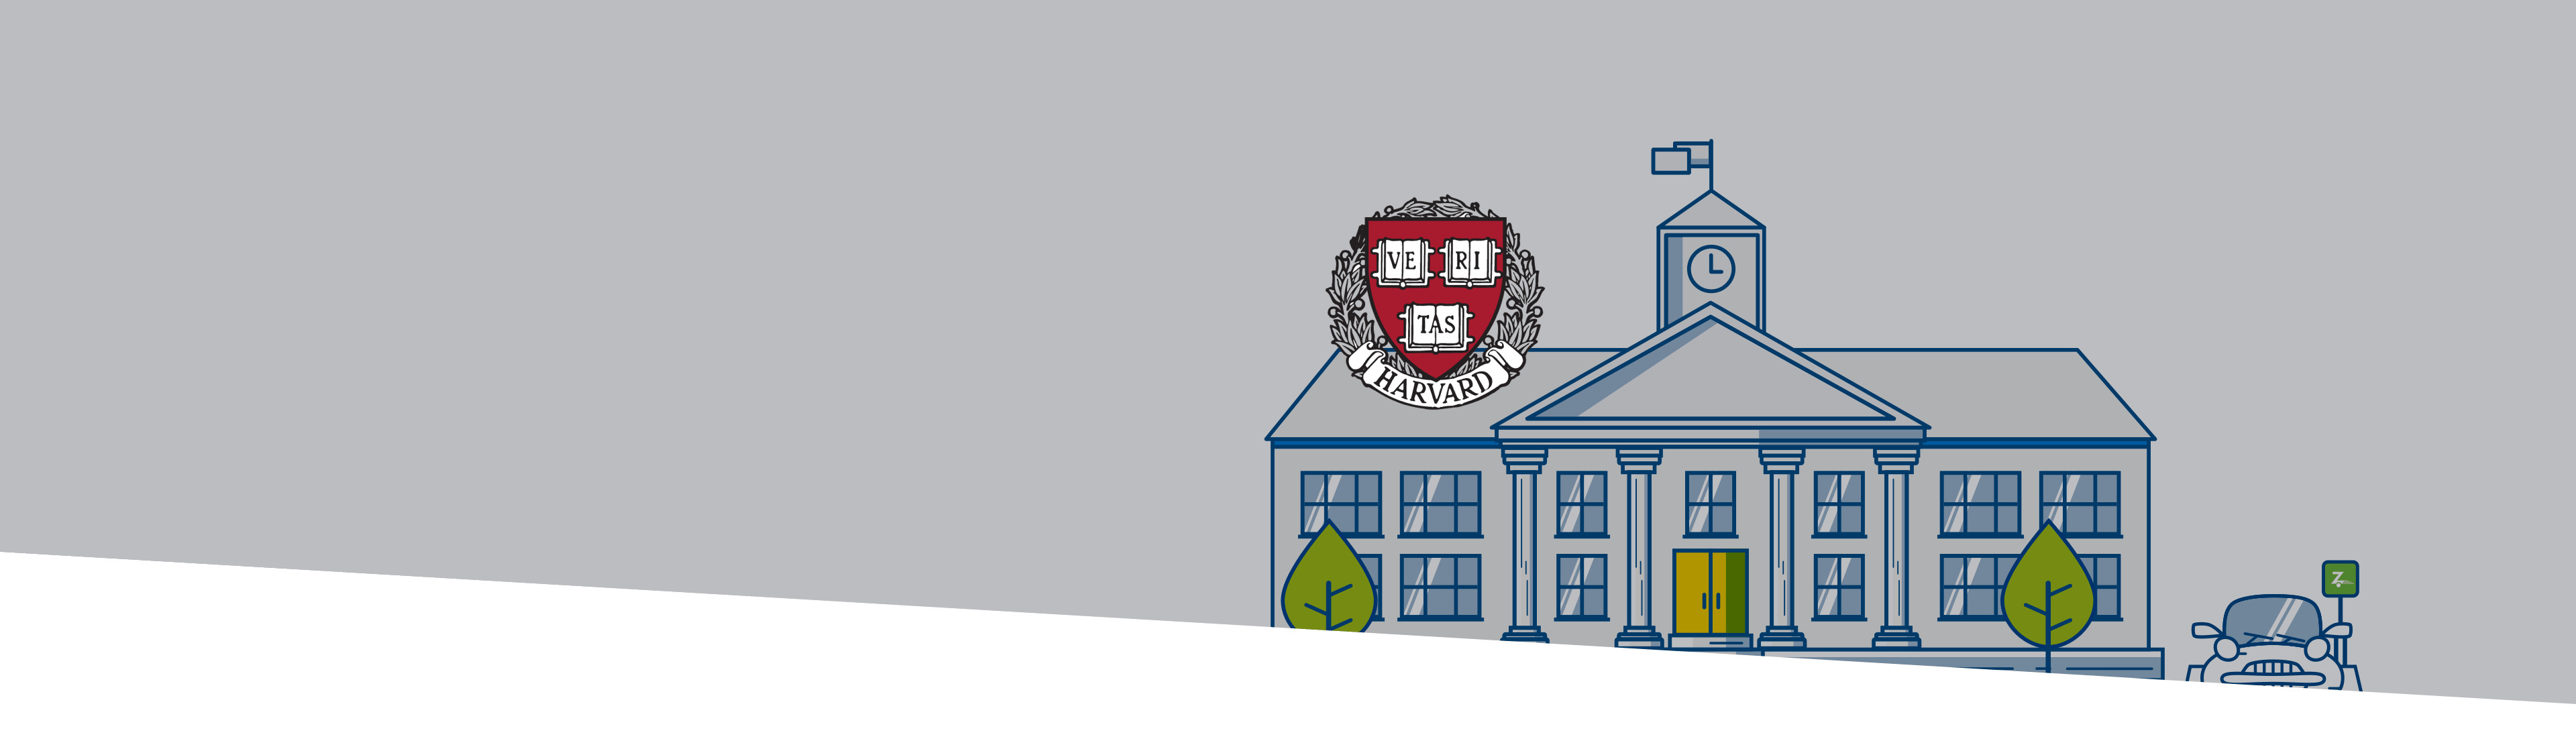 Harvard University campus buildings and logo